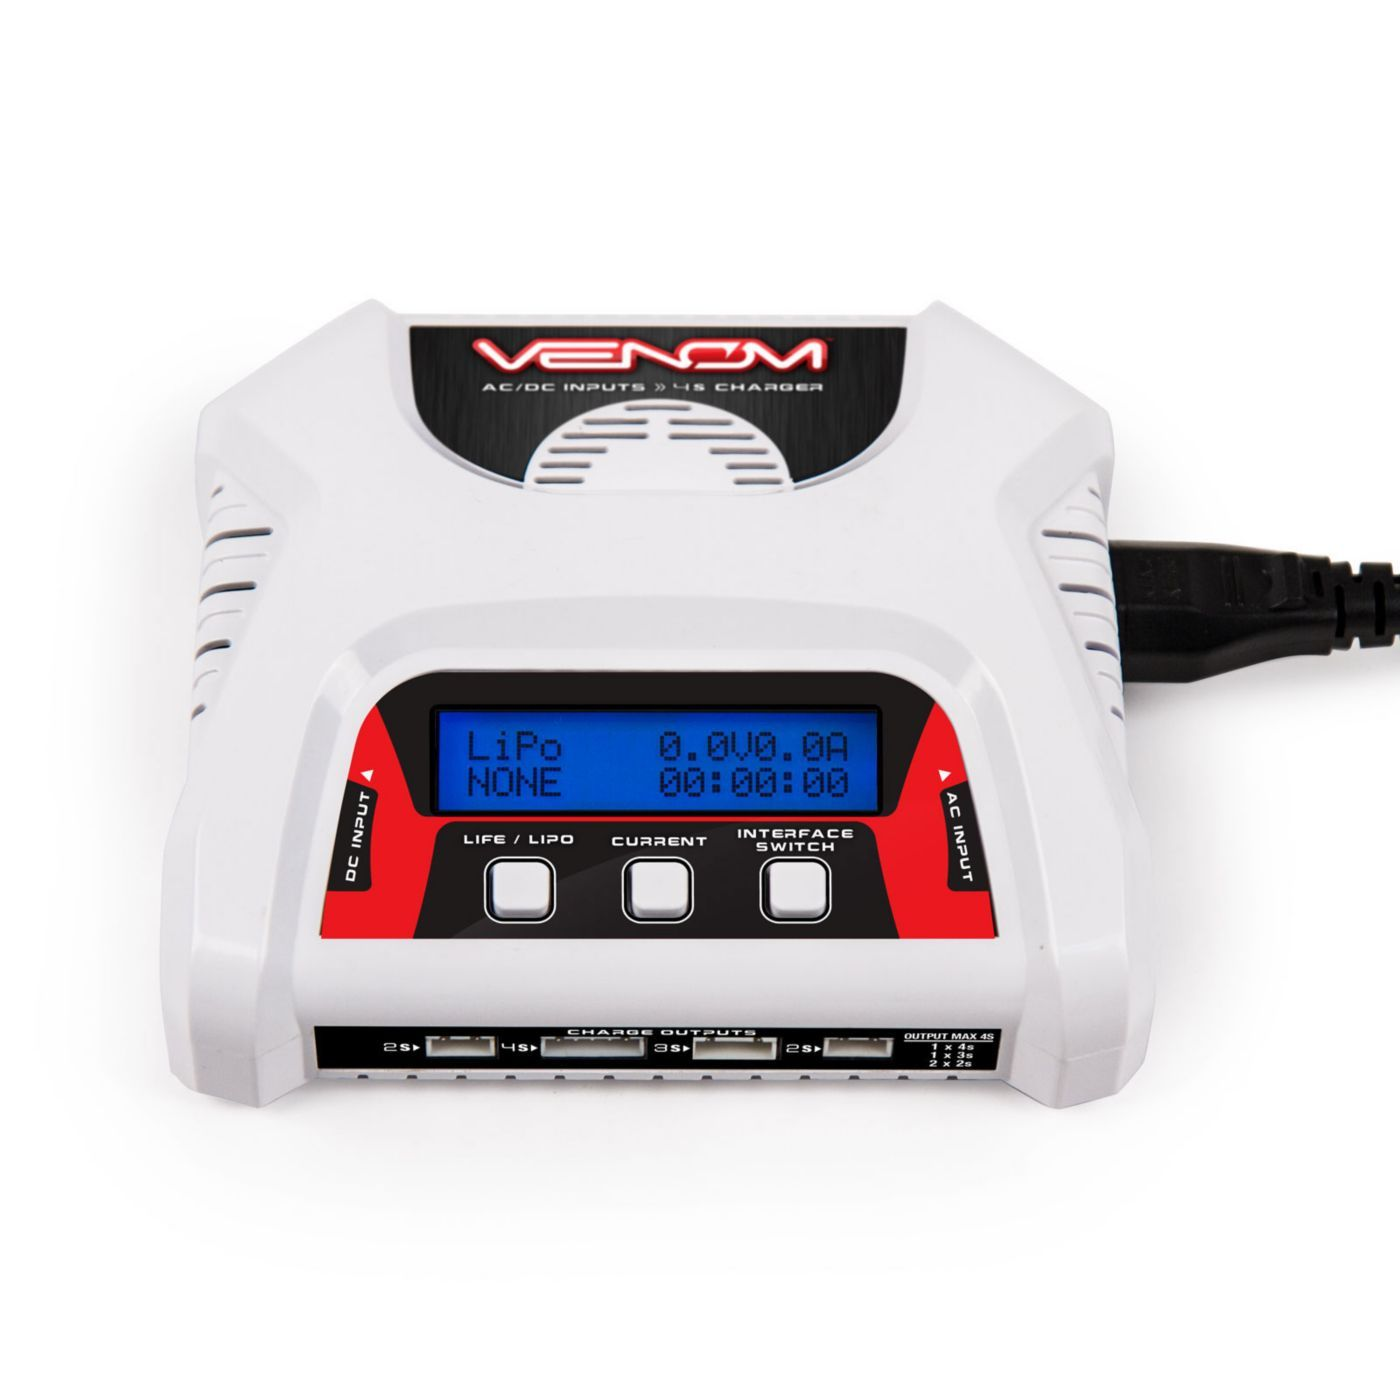 24 Cell AC/DC LiPo Charger (VNR0683) (With images) Lipo